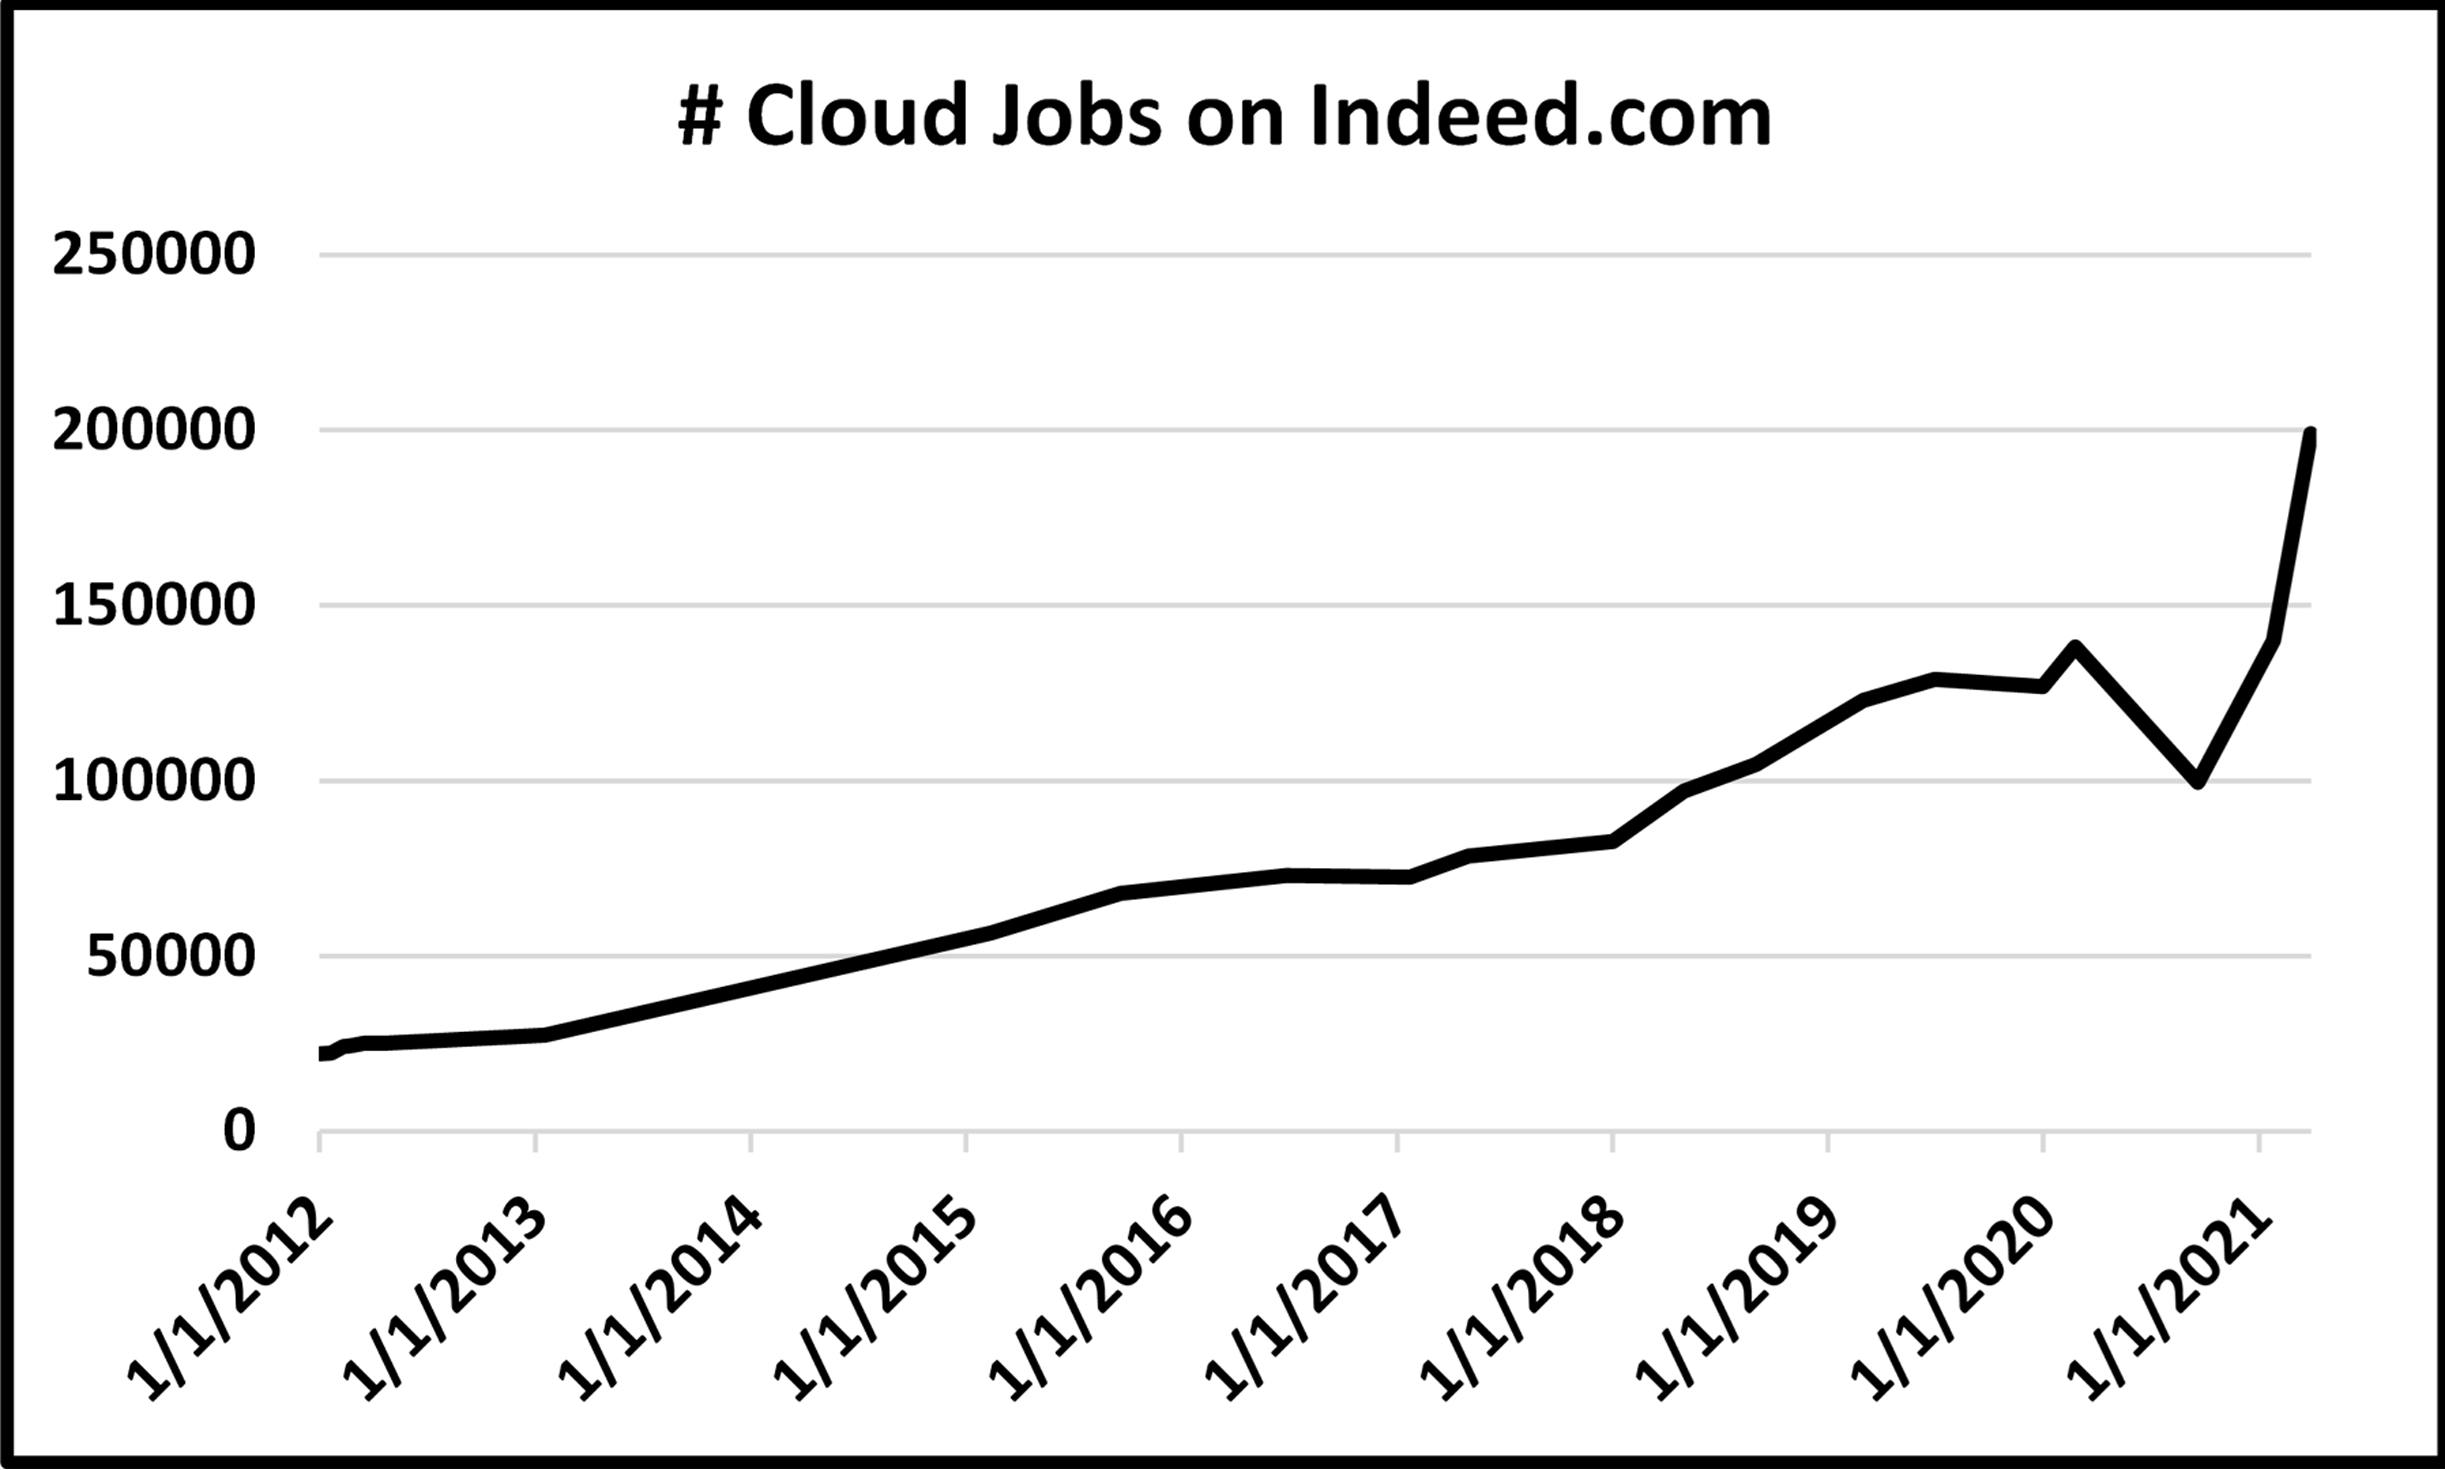 Number of cloud jobs on Indeed.com-chart.